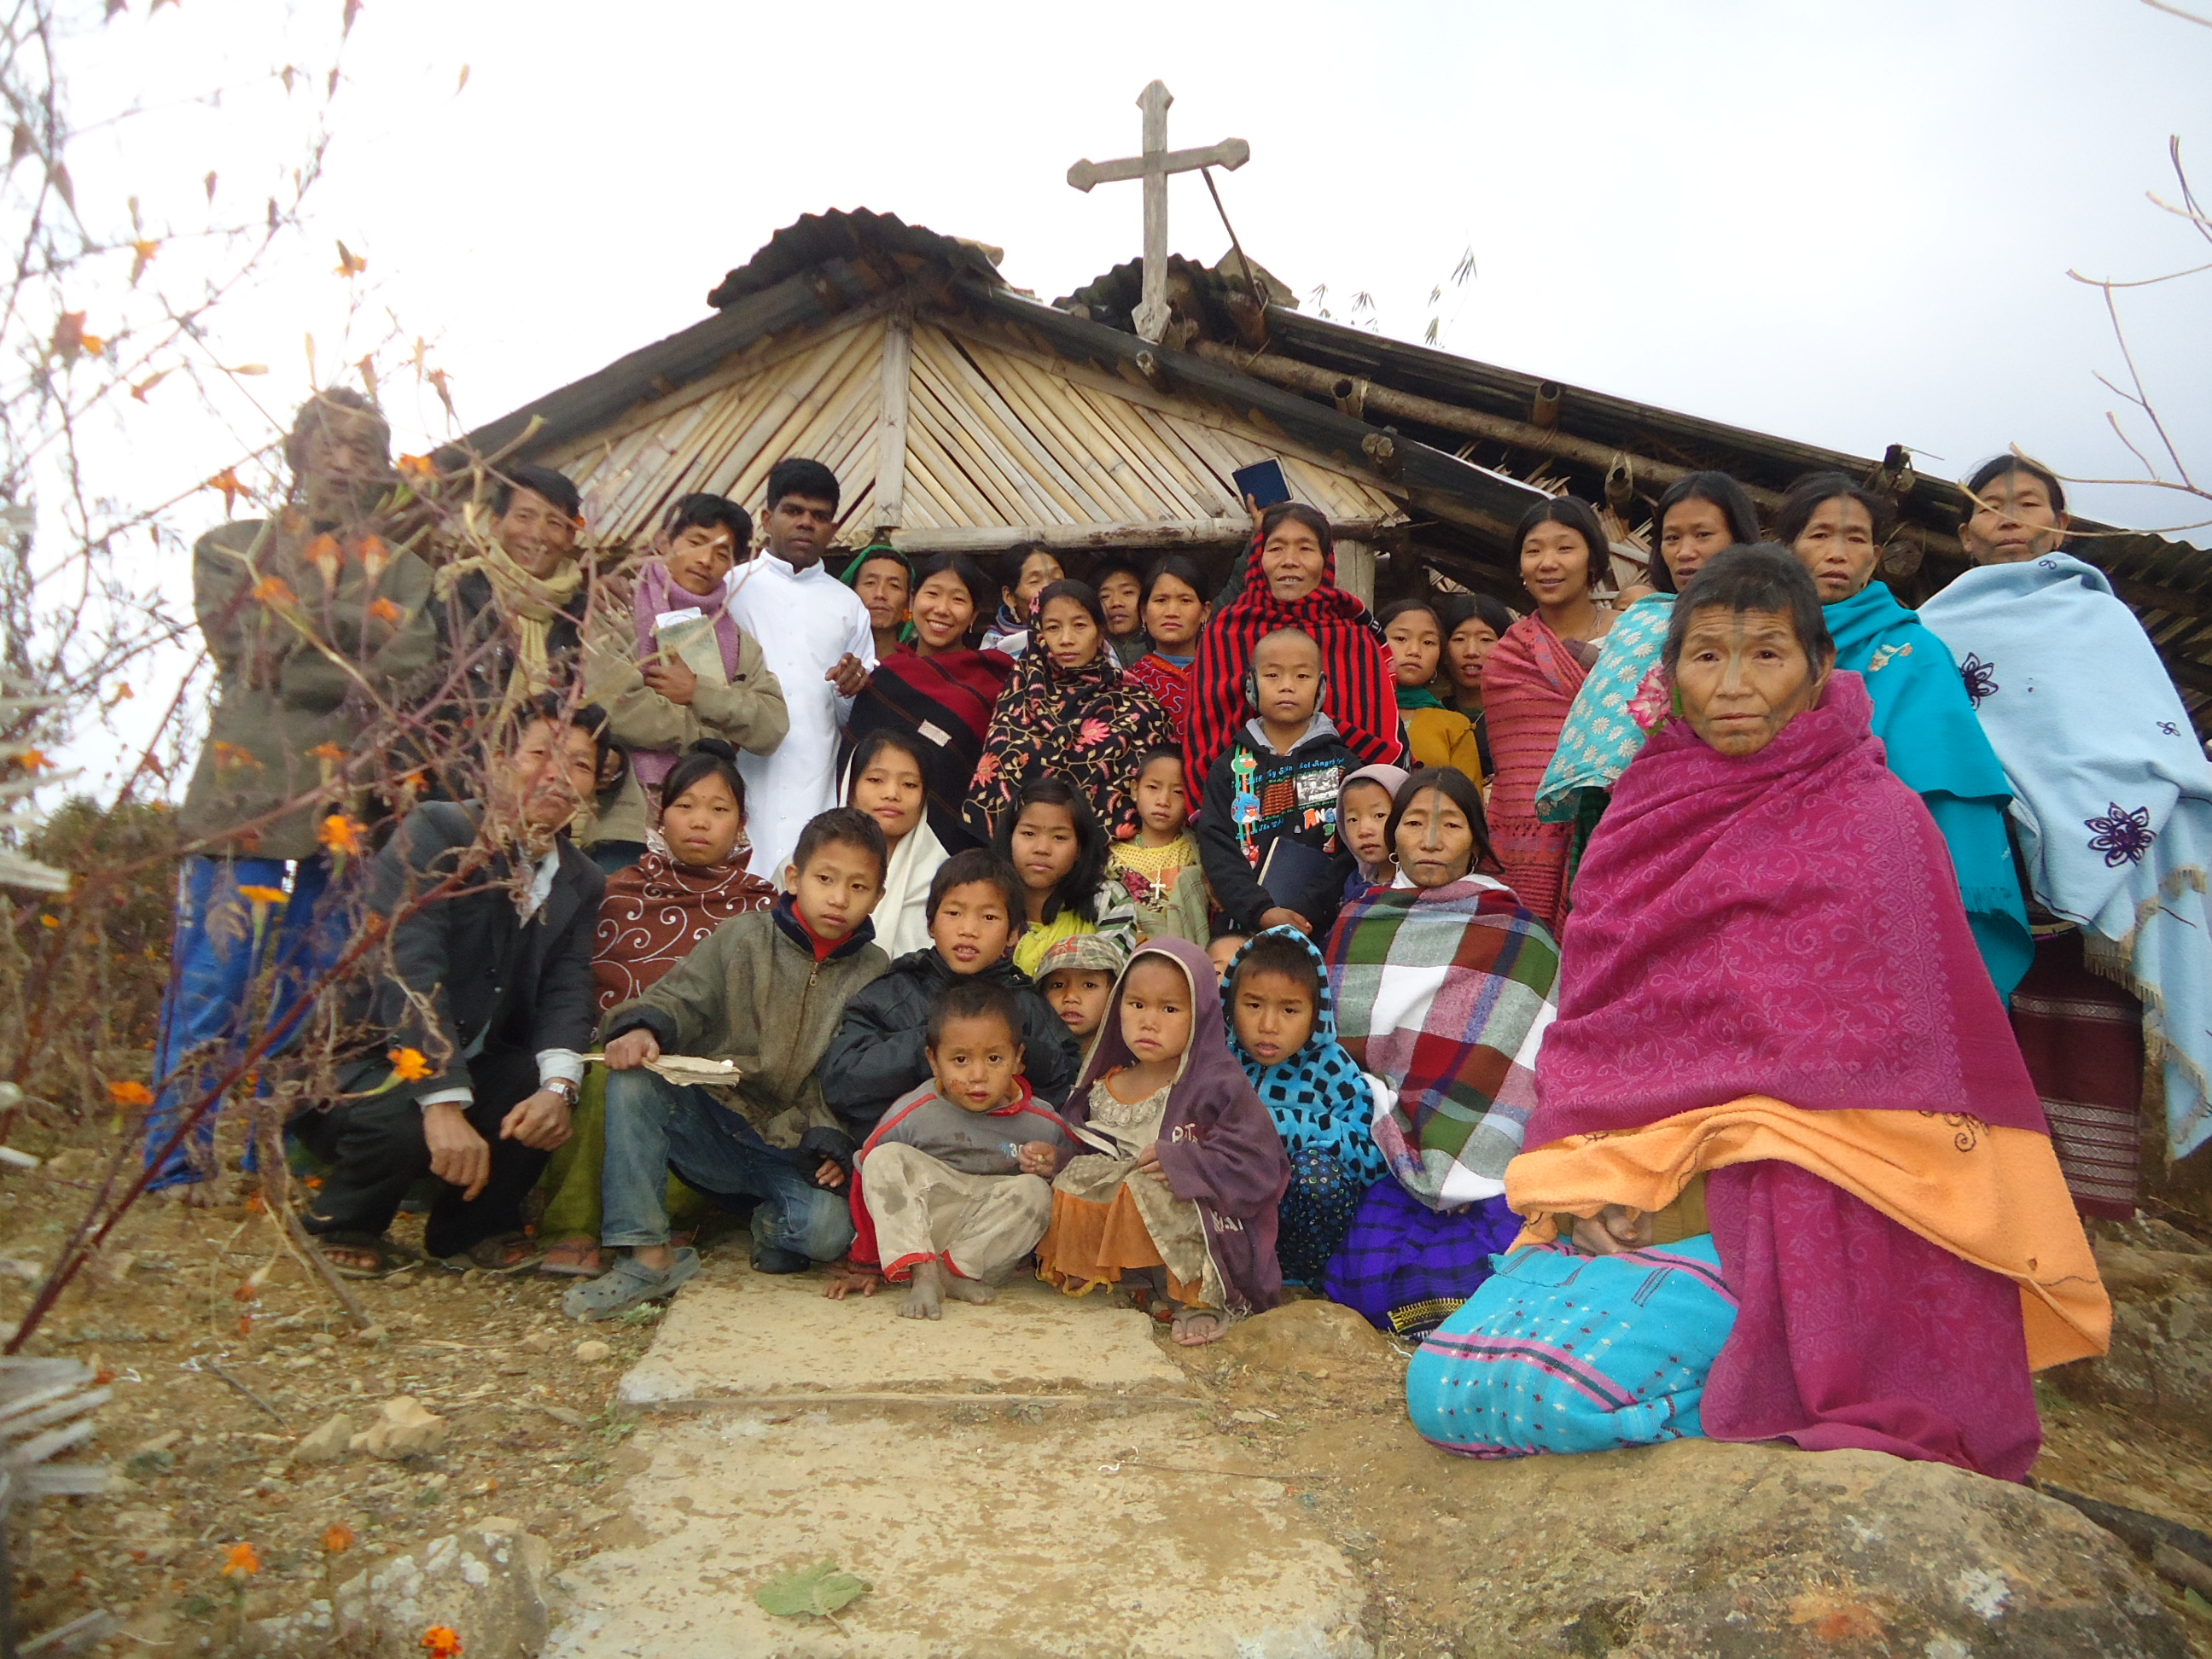 Our Missionary Fr. Jiby Mathew with his parishioners of Lanchian Village - Lazu parish